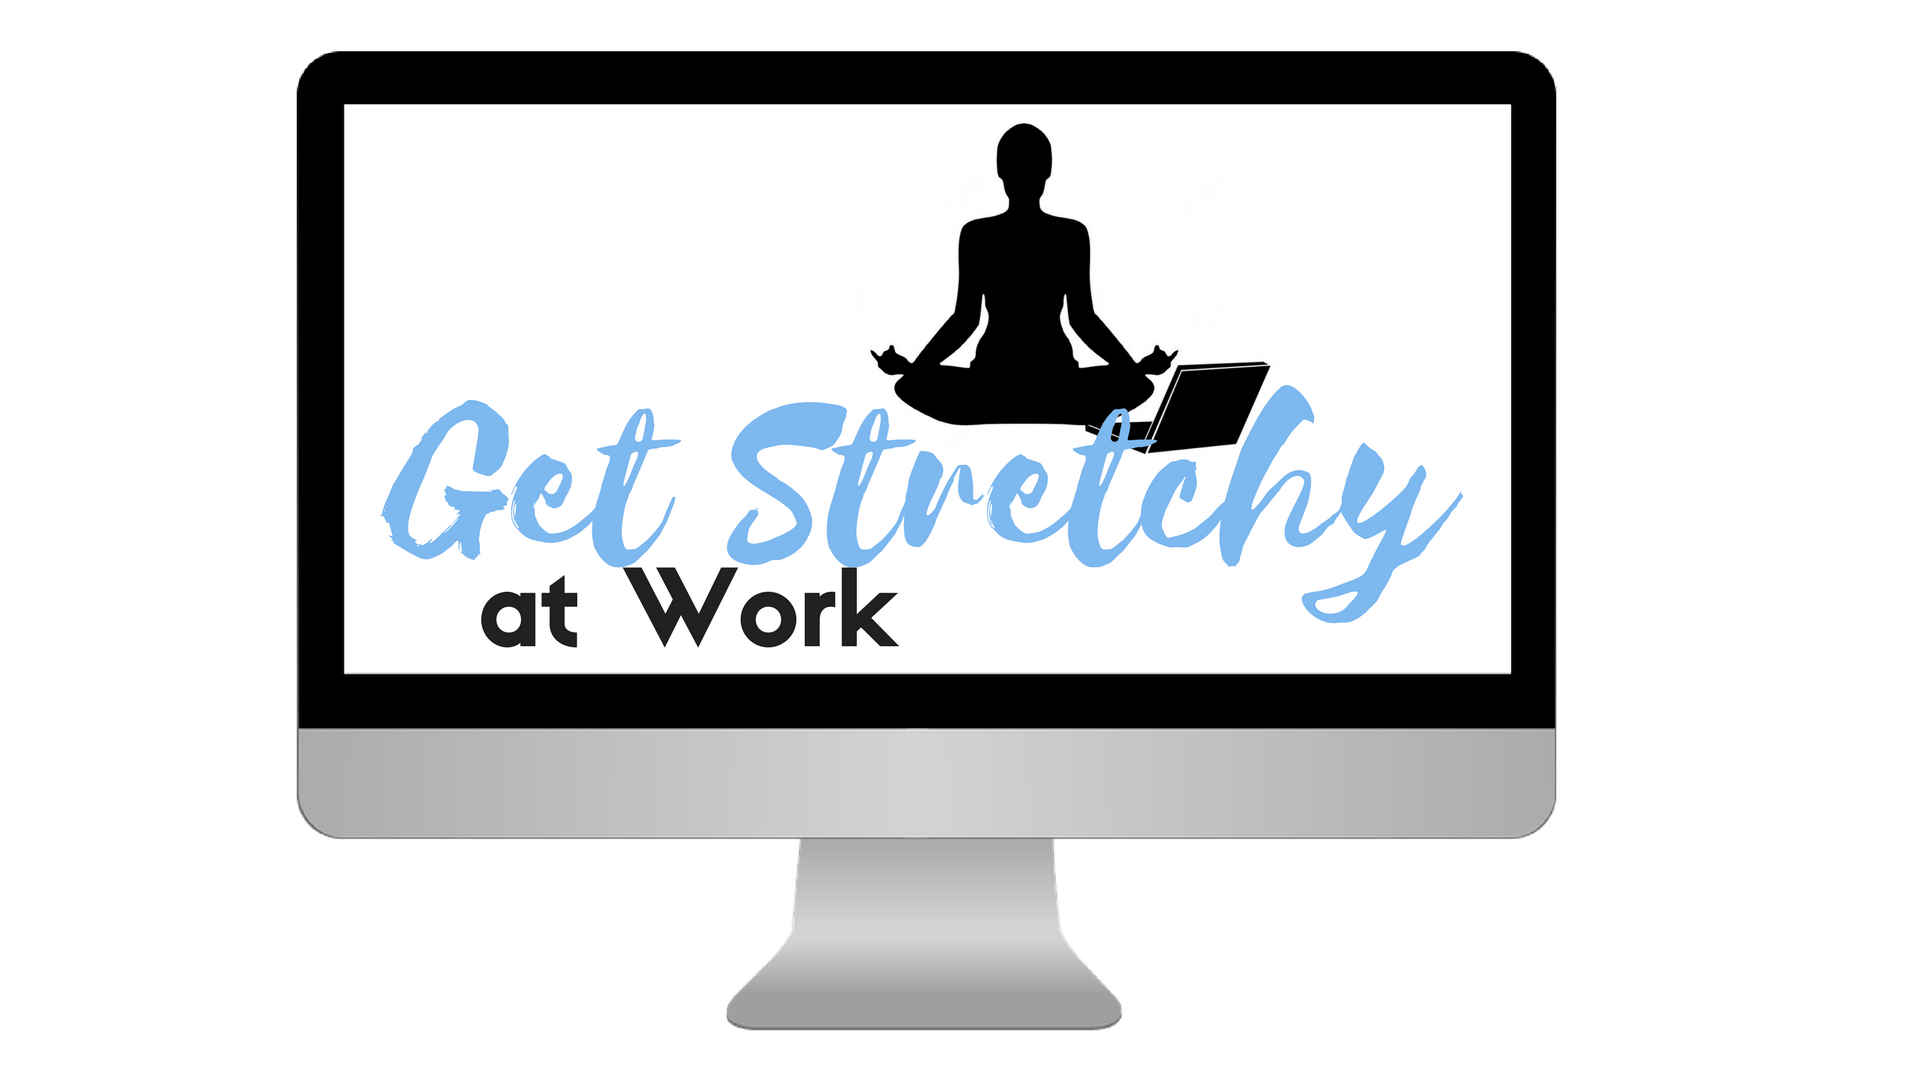 Get Stretchy at Work